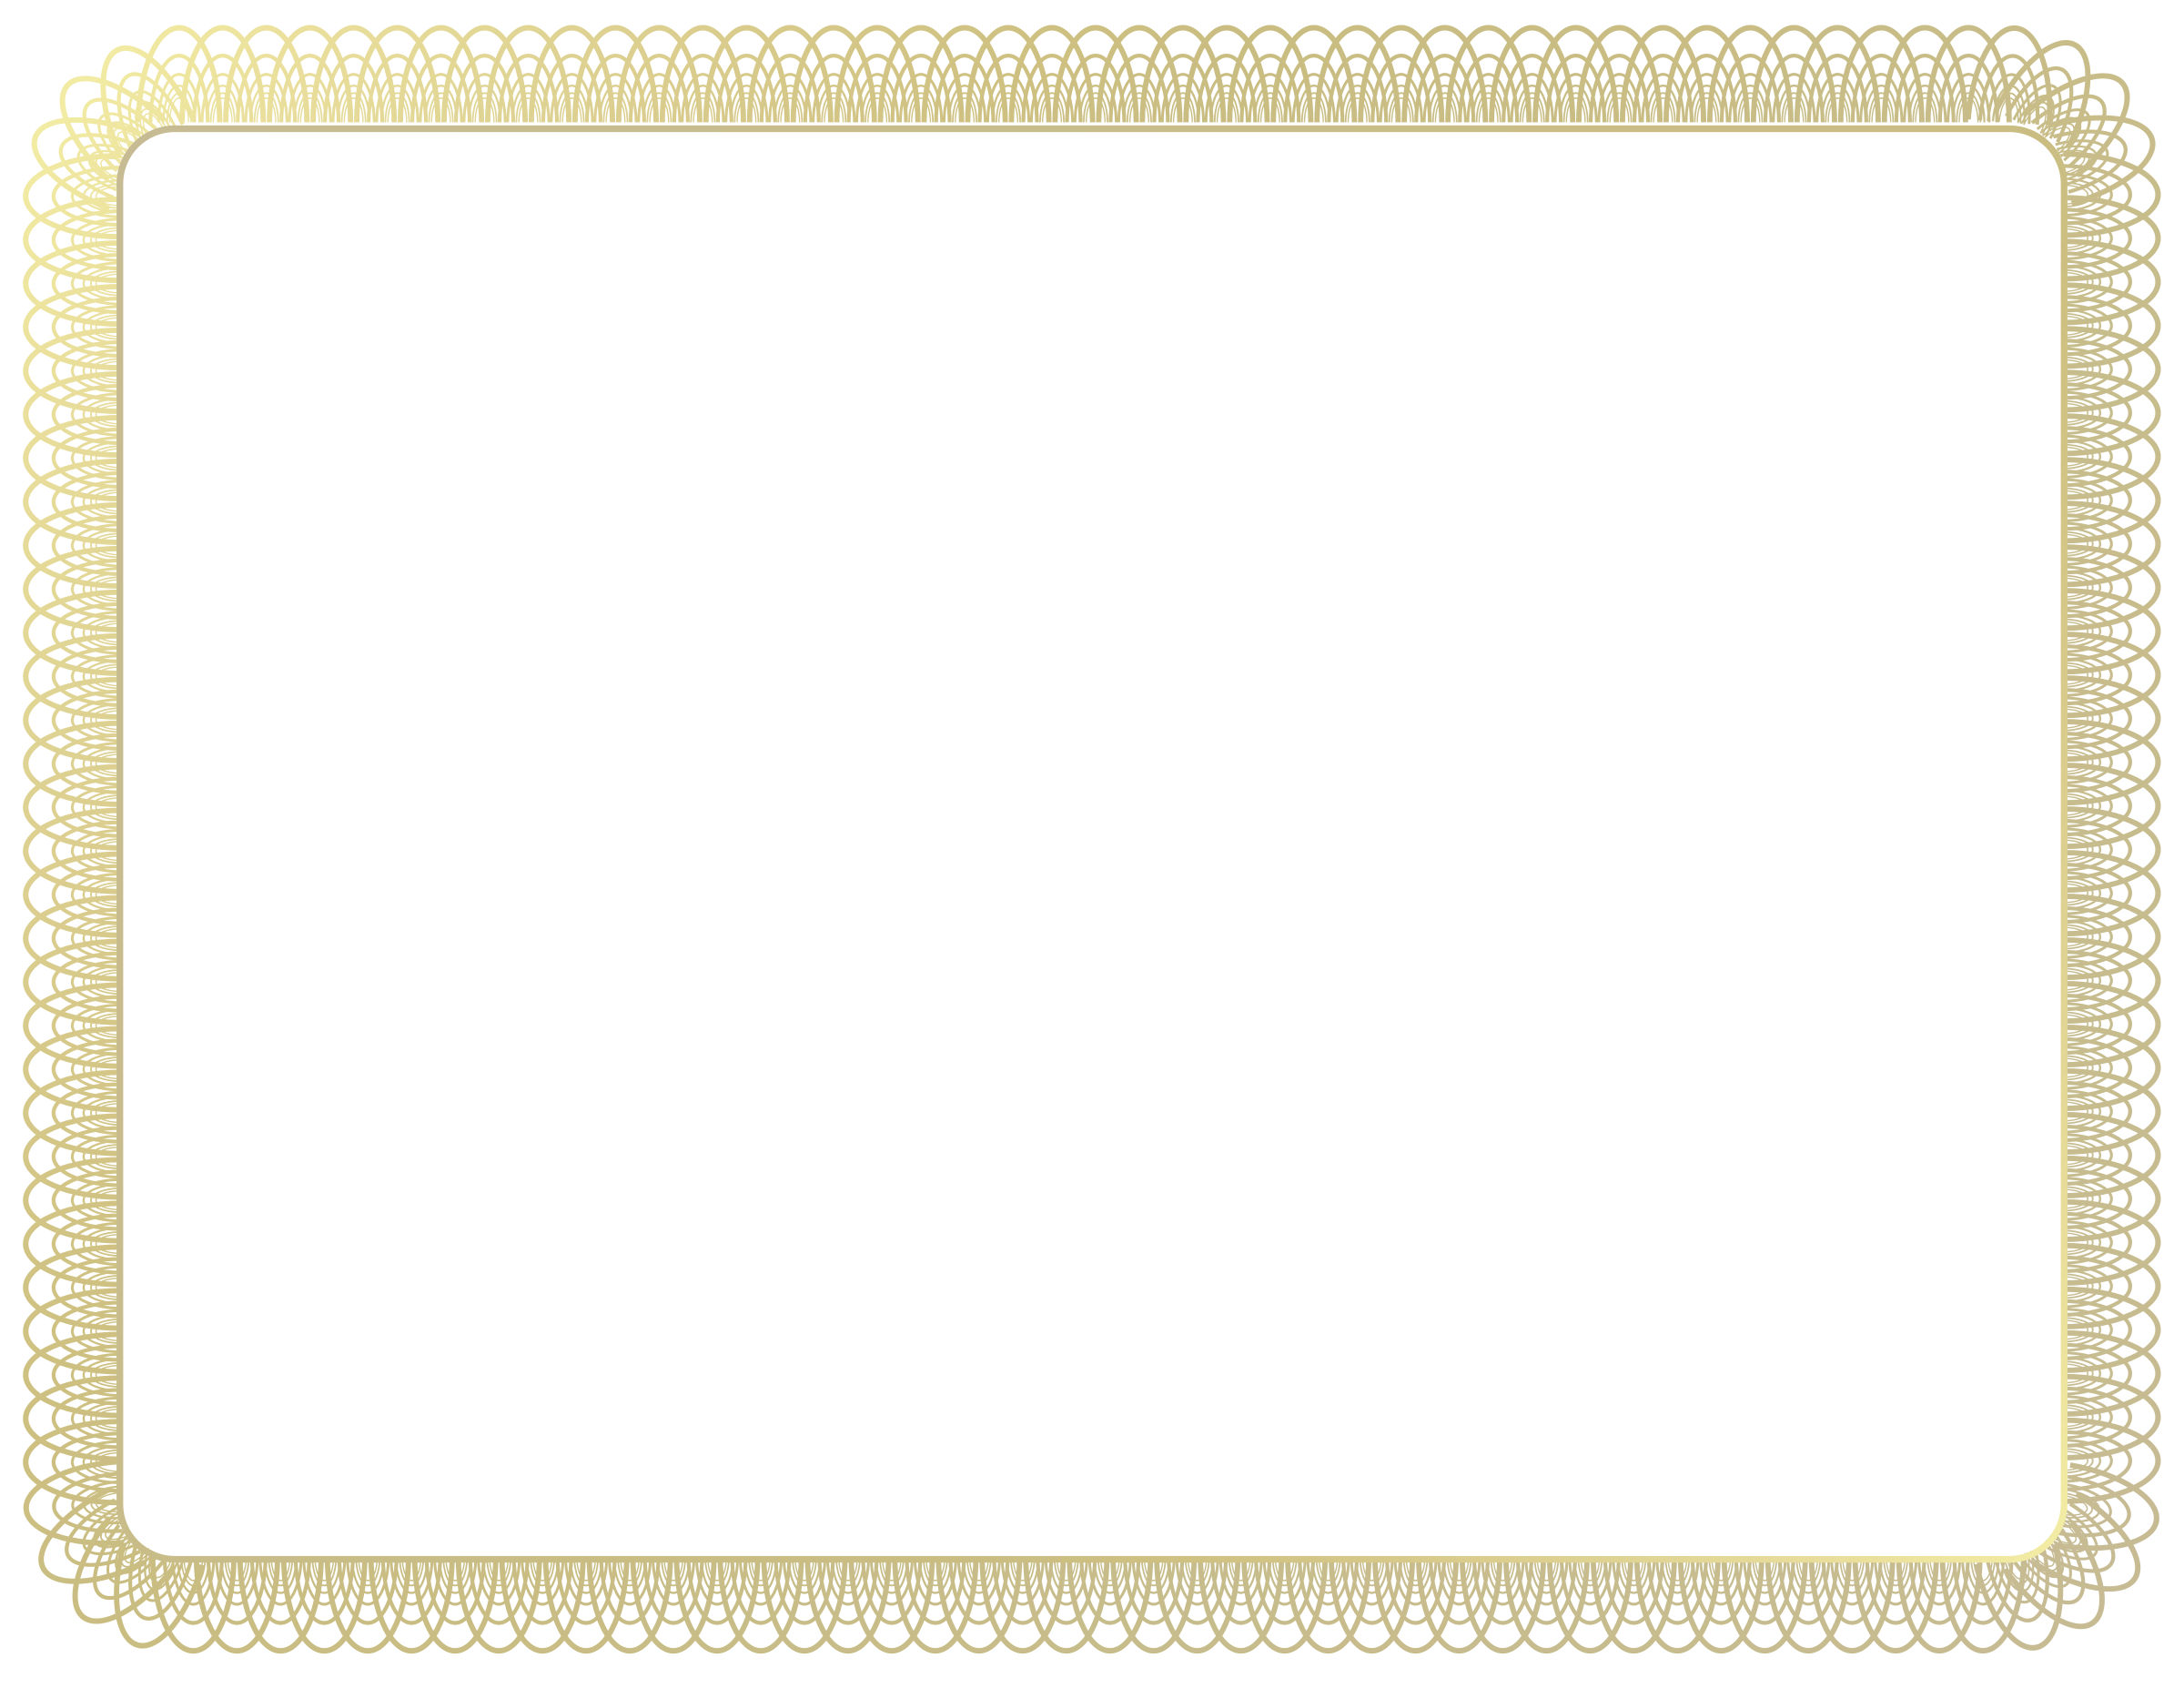 Coupon clipart border. Gold frame certificate by